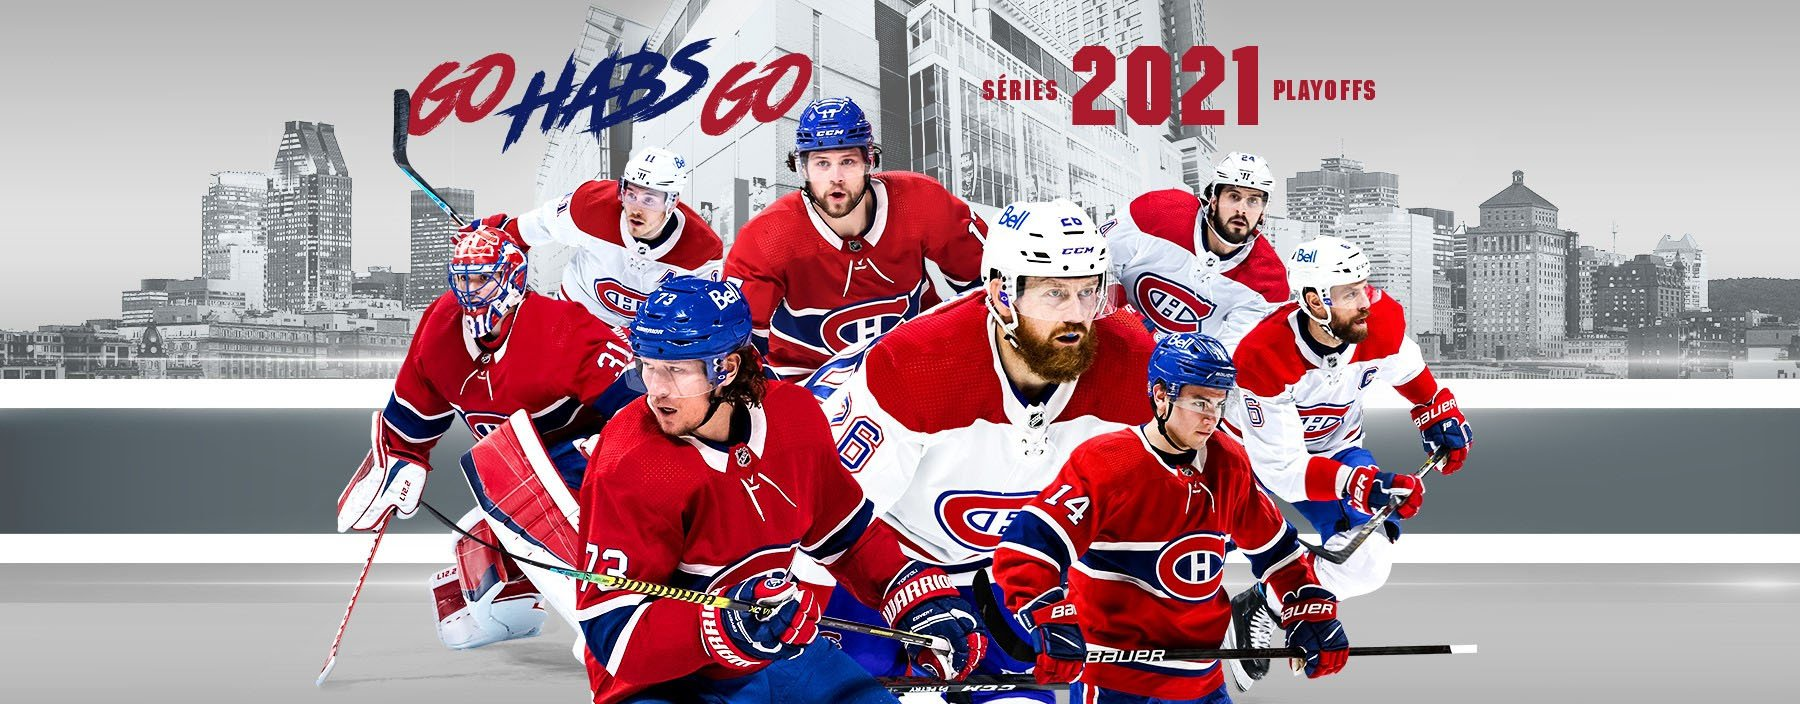 Montreal Canadiens on the verge of winning the Stanley Cup